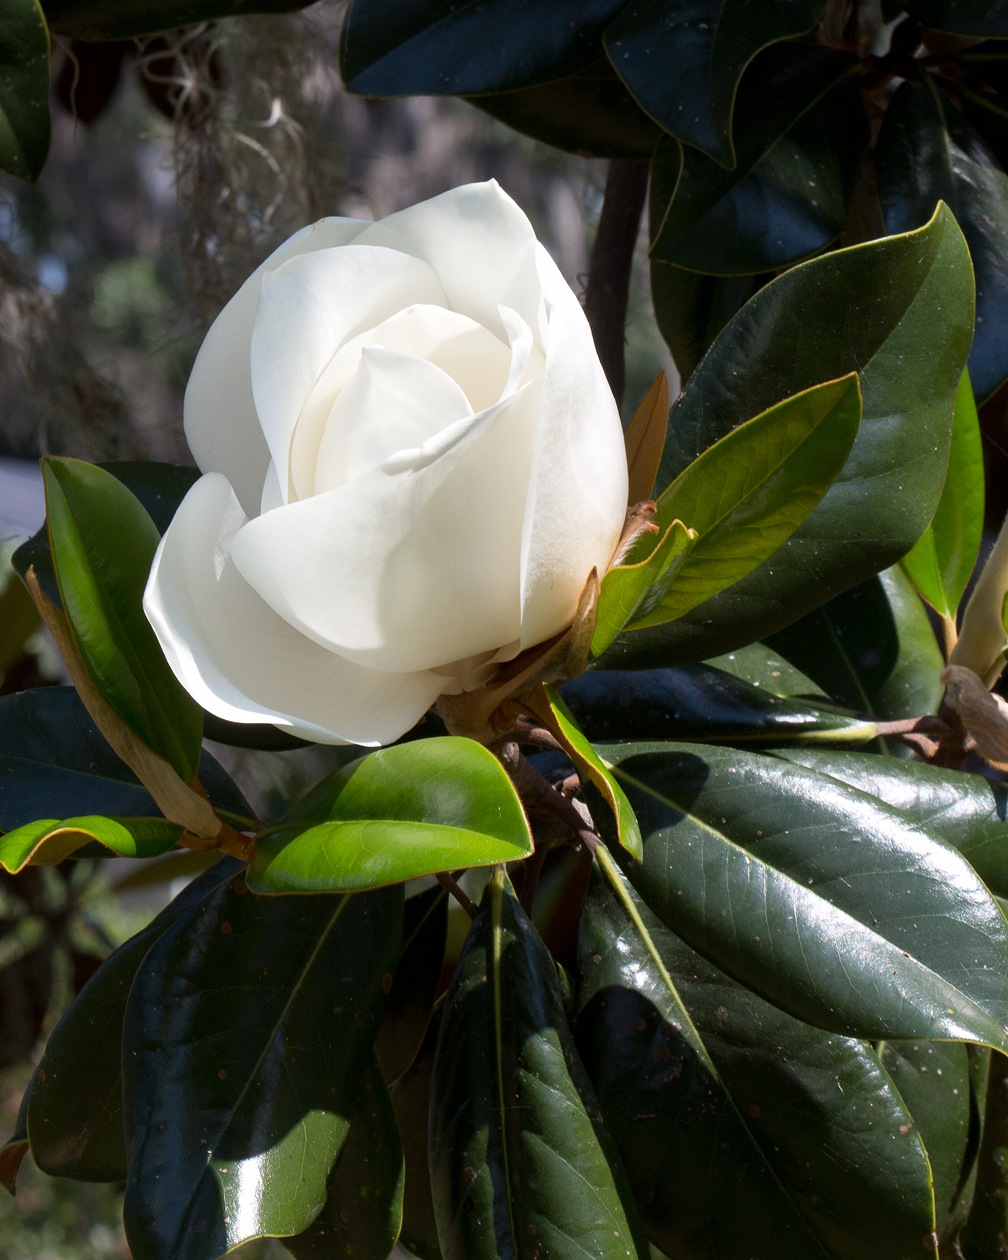 Southern Magnolia by ChuckL